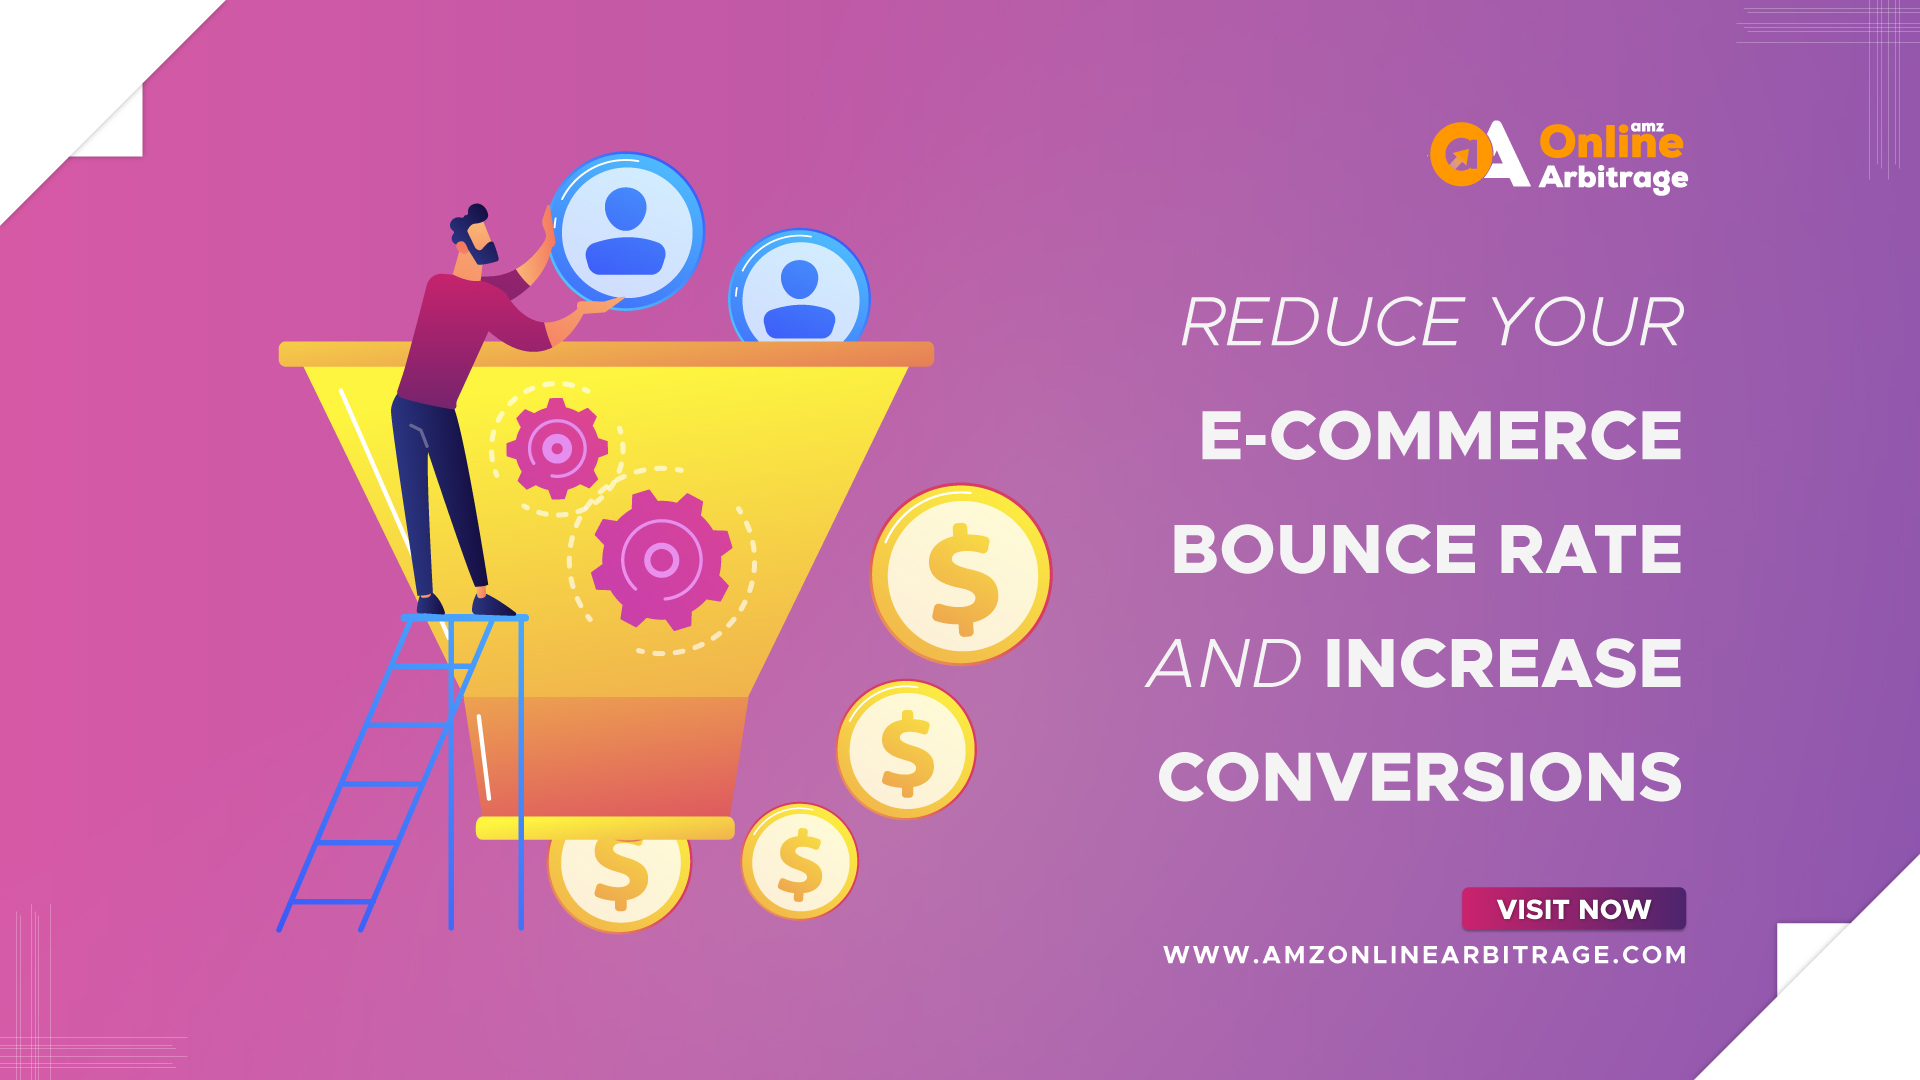 REDUCE YOUR E-COMMERCE BOUNCE RATE AND INCREASE CONVERSIONS